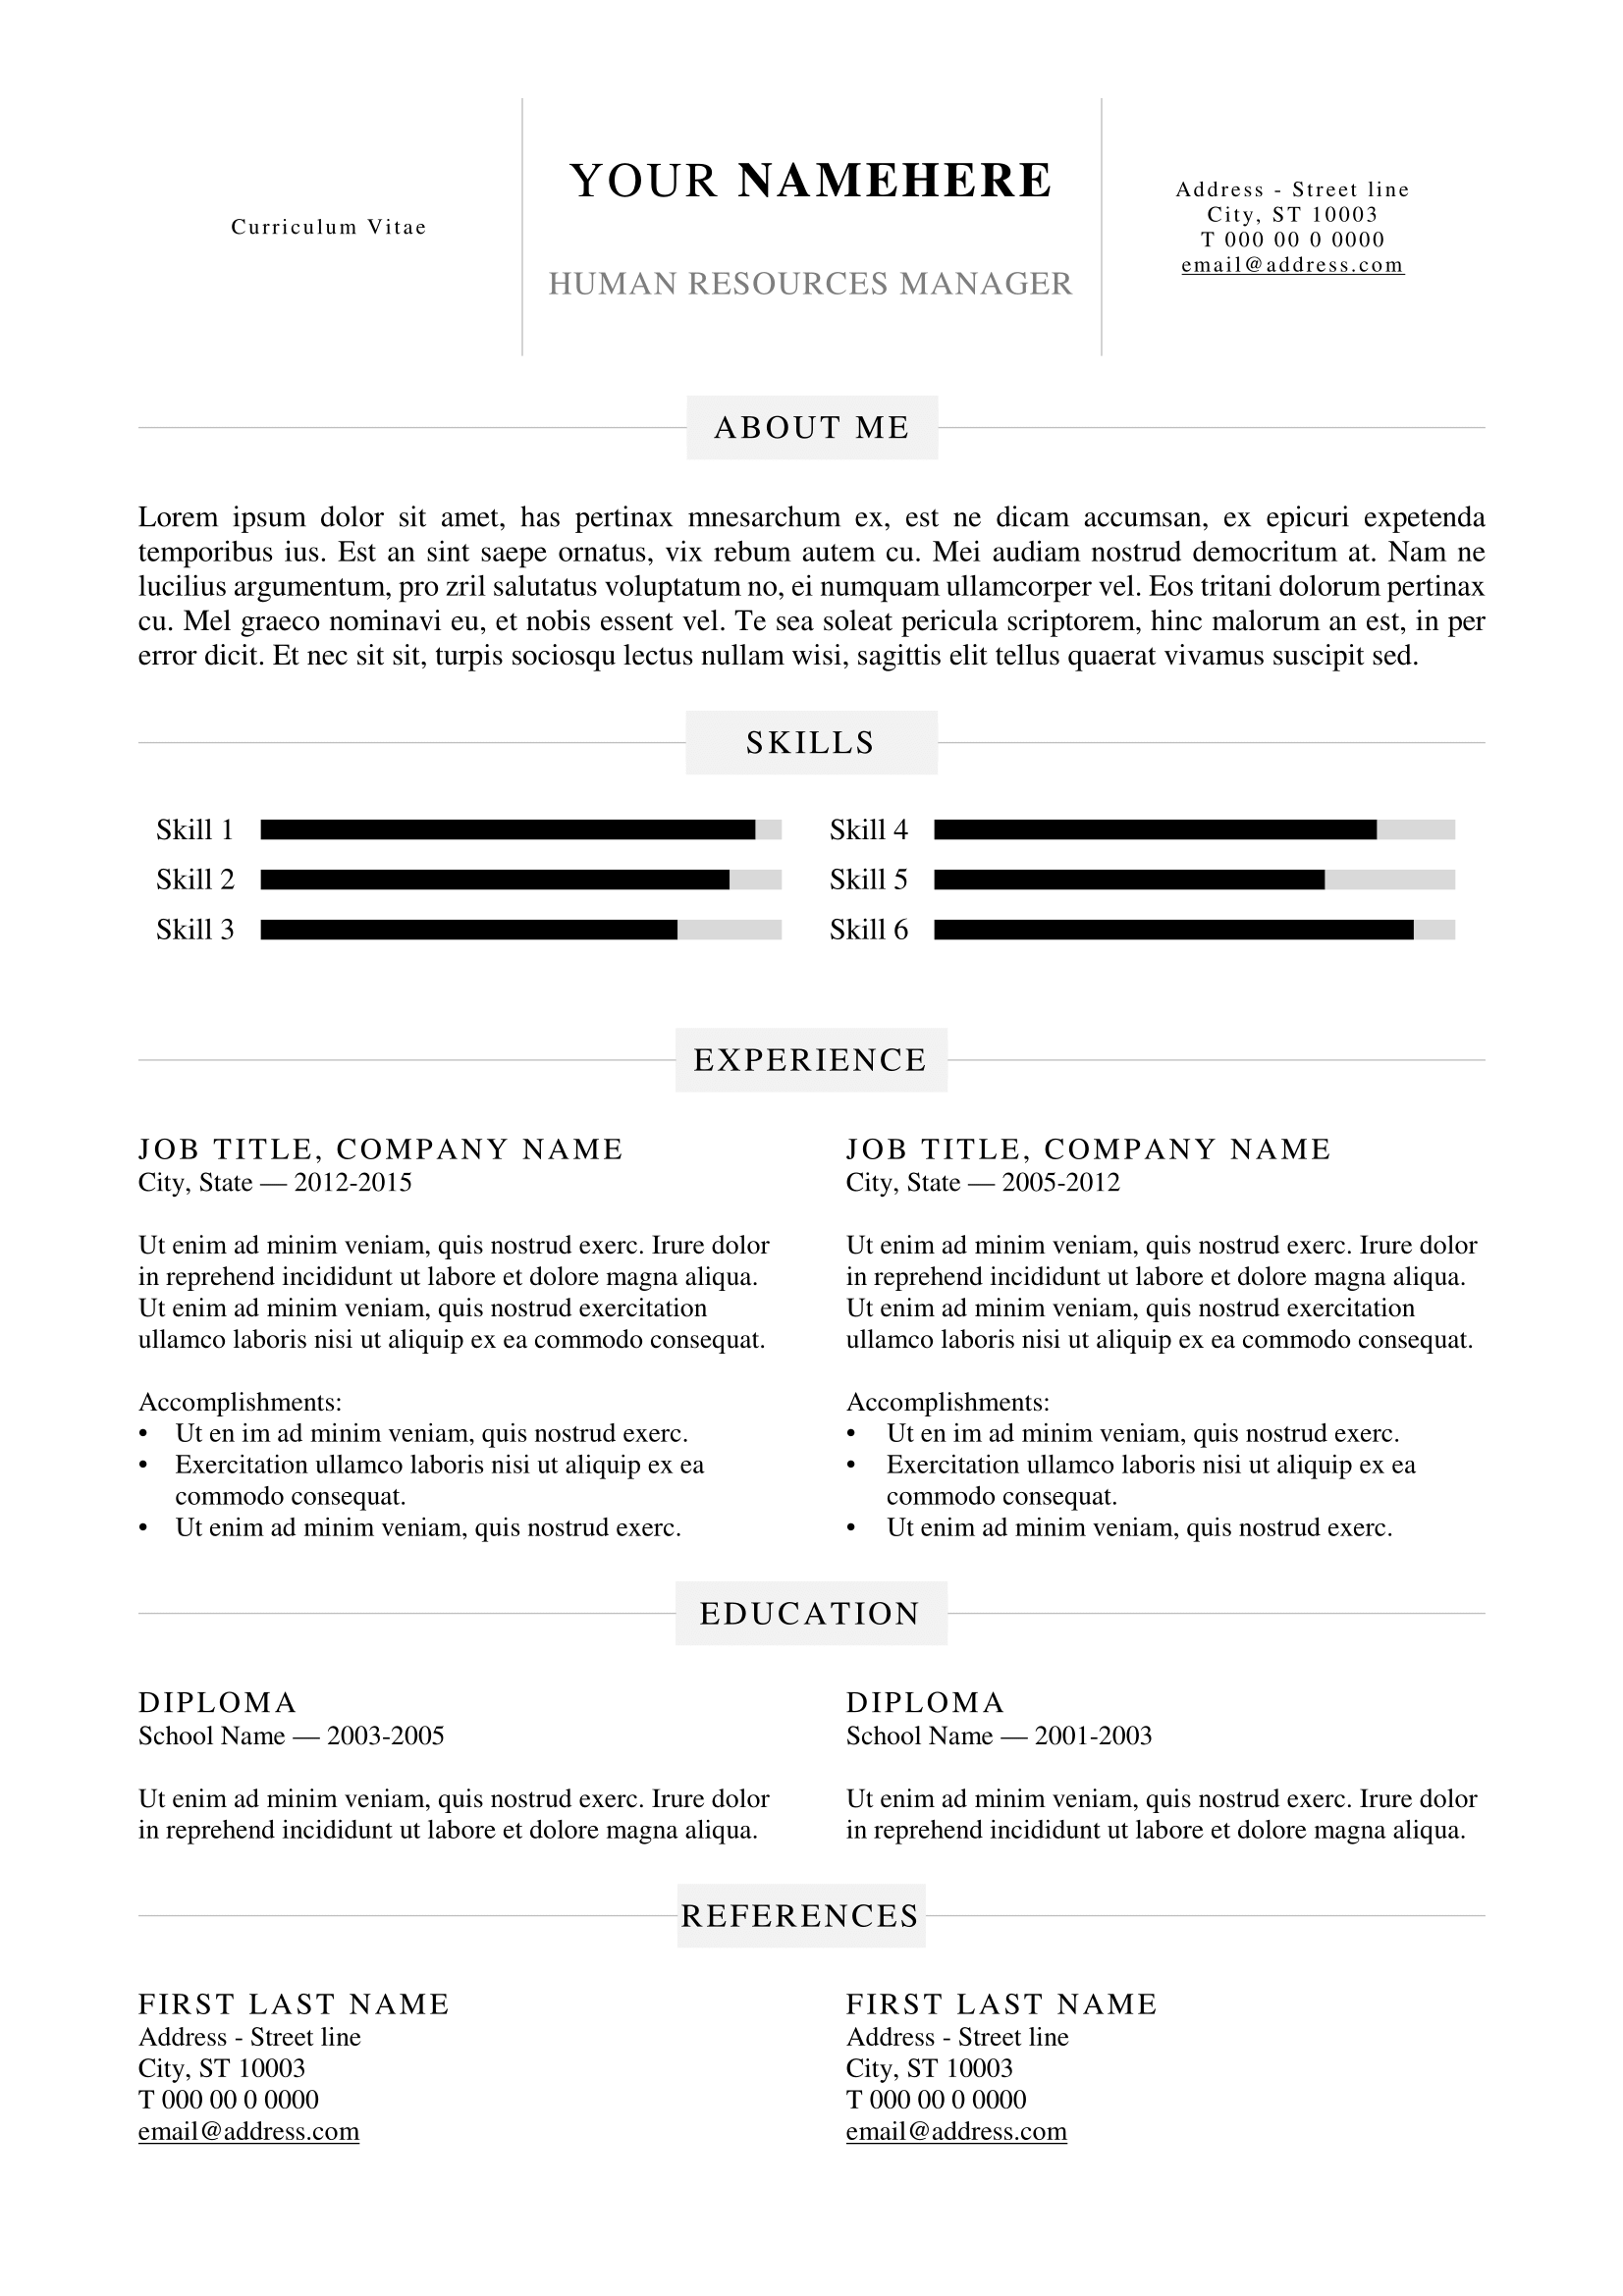 kallio free simple resume template for word docx